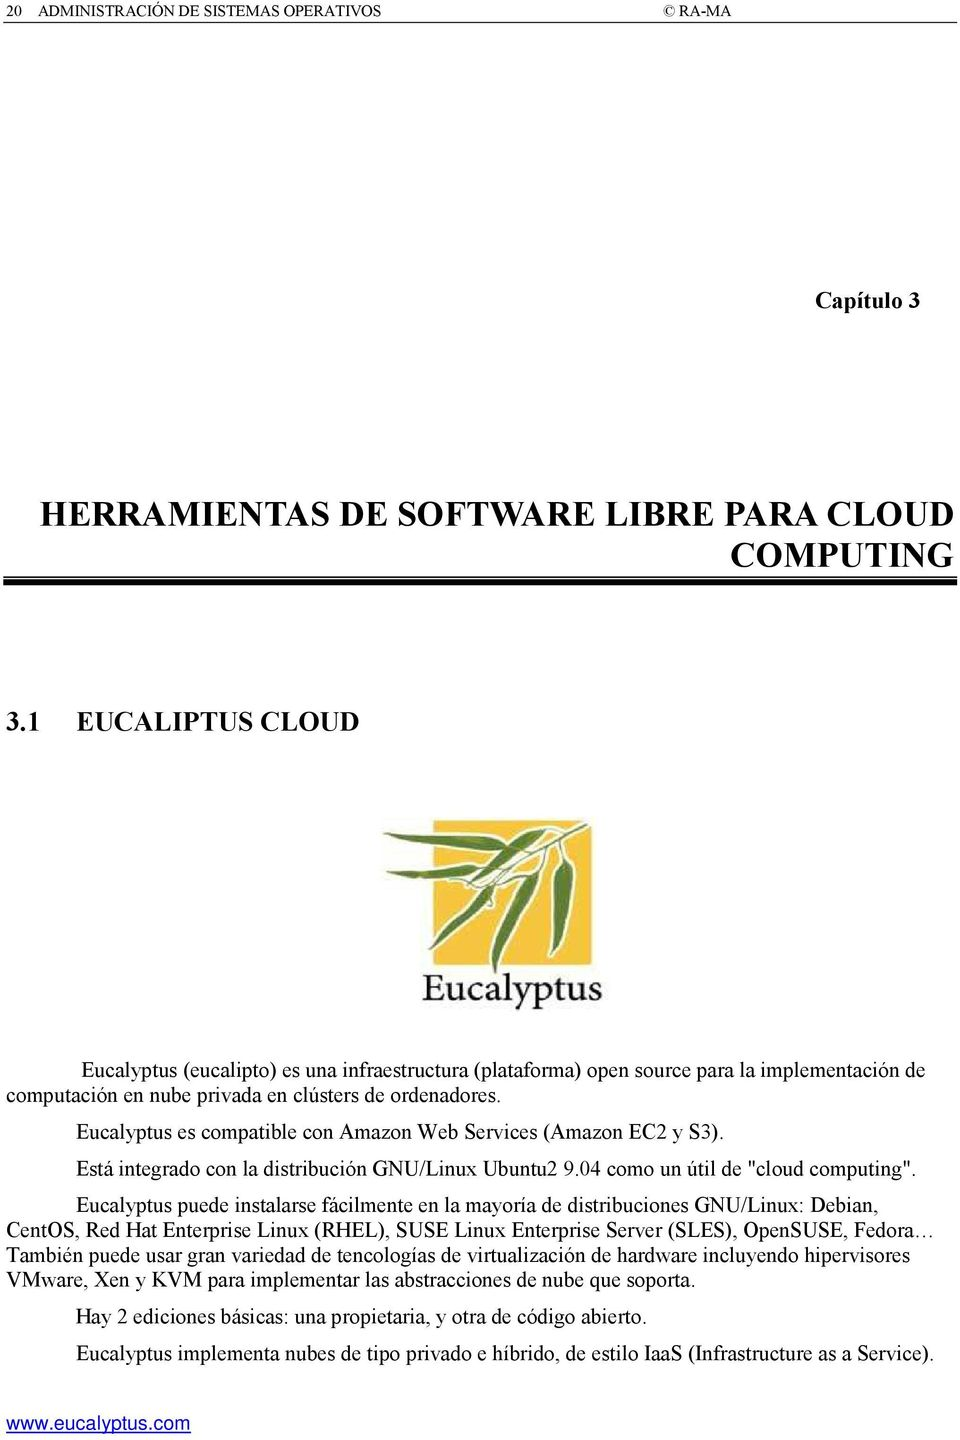 "Eucalyptus es compatible con Amazon Web Services (Amazon EC2 y S3). Está integrado con la distribución GNU/Linux Ubuntu2 9.04 como un útil de ""cloud computing""."